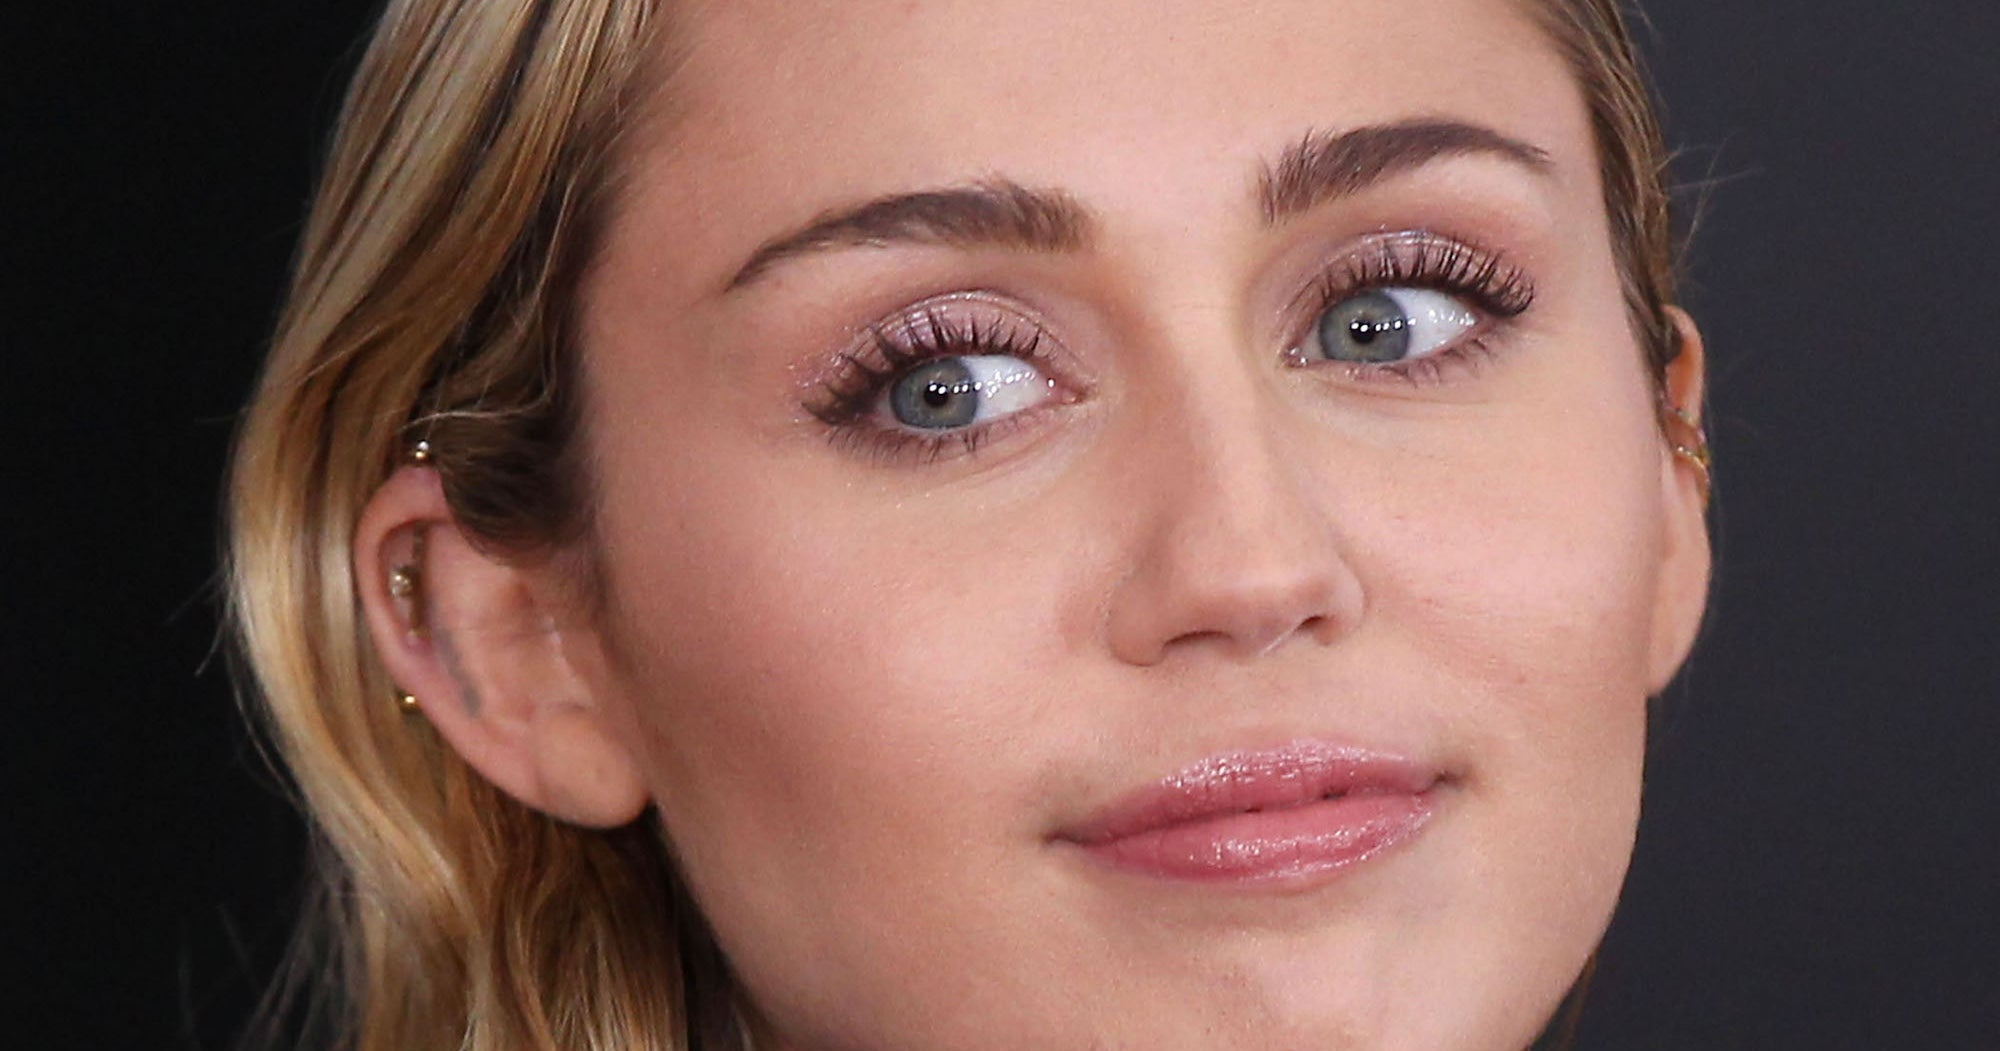 Miley Cyrus Shares Hospital Selfie & Asks For Good Vibes